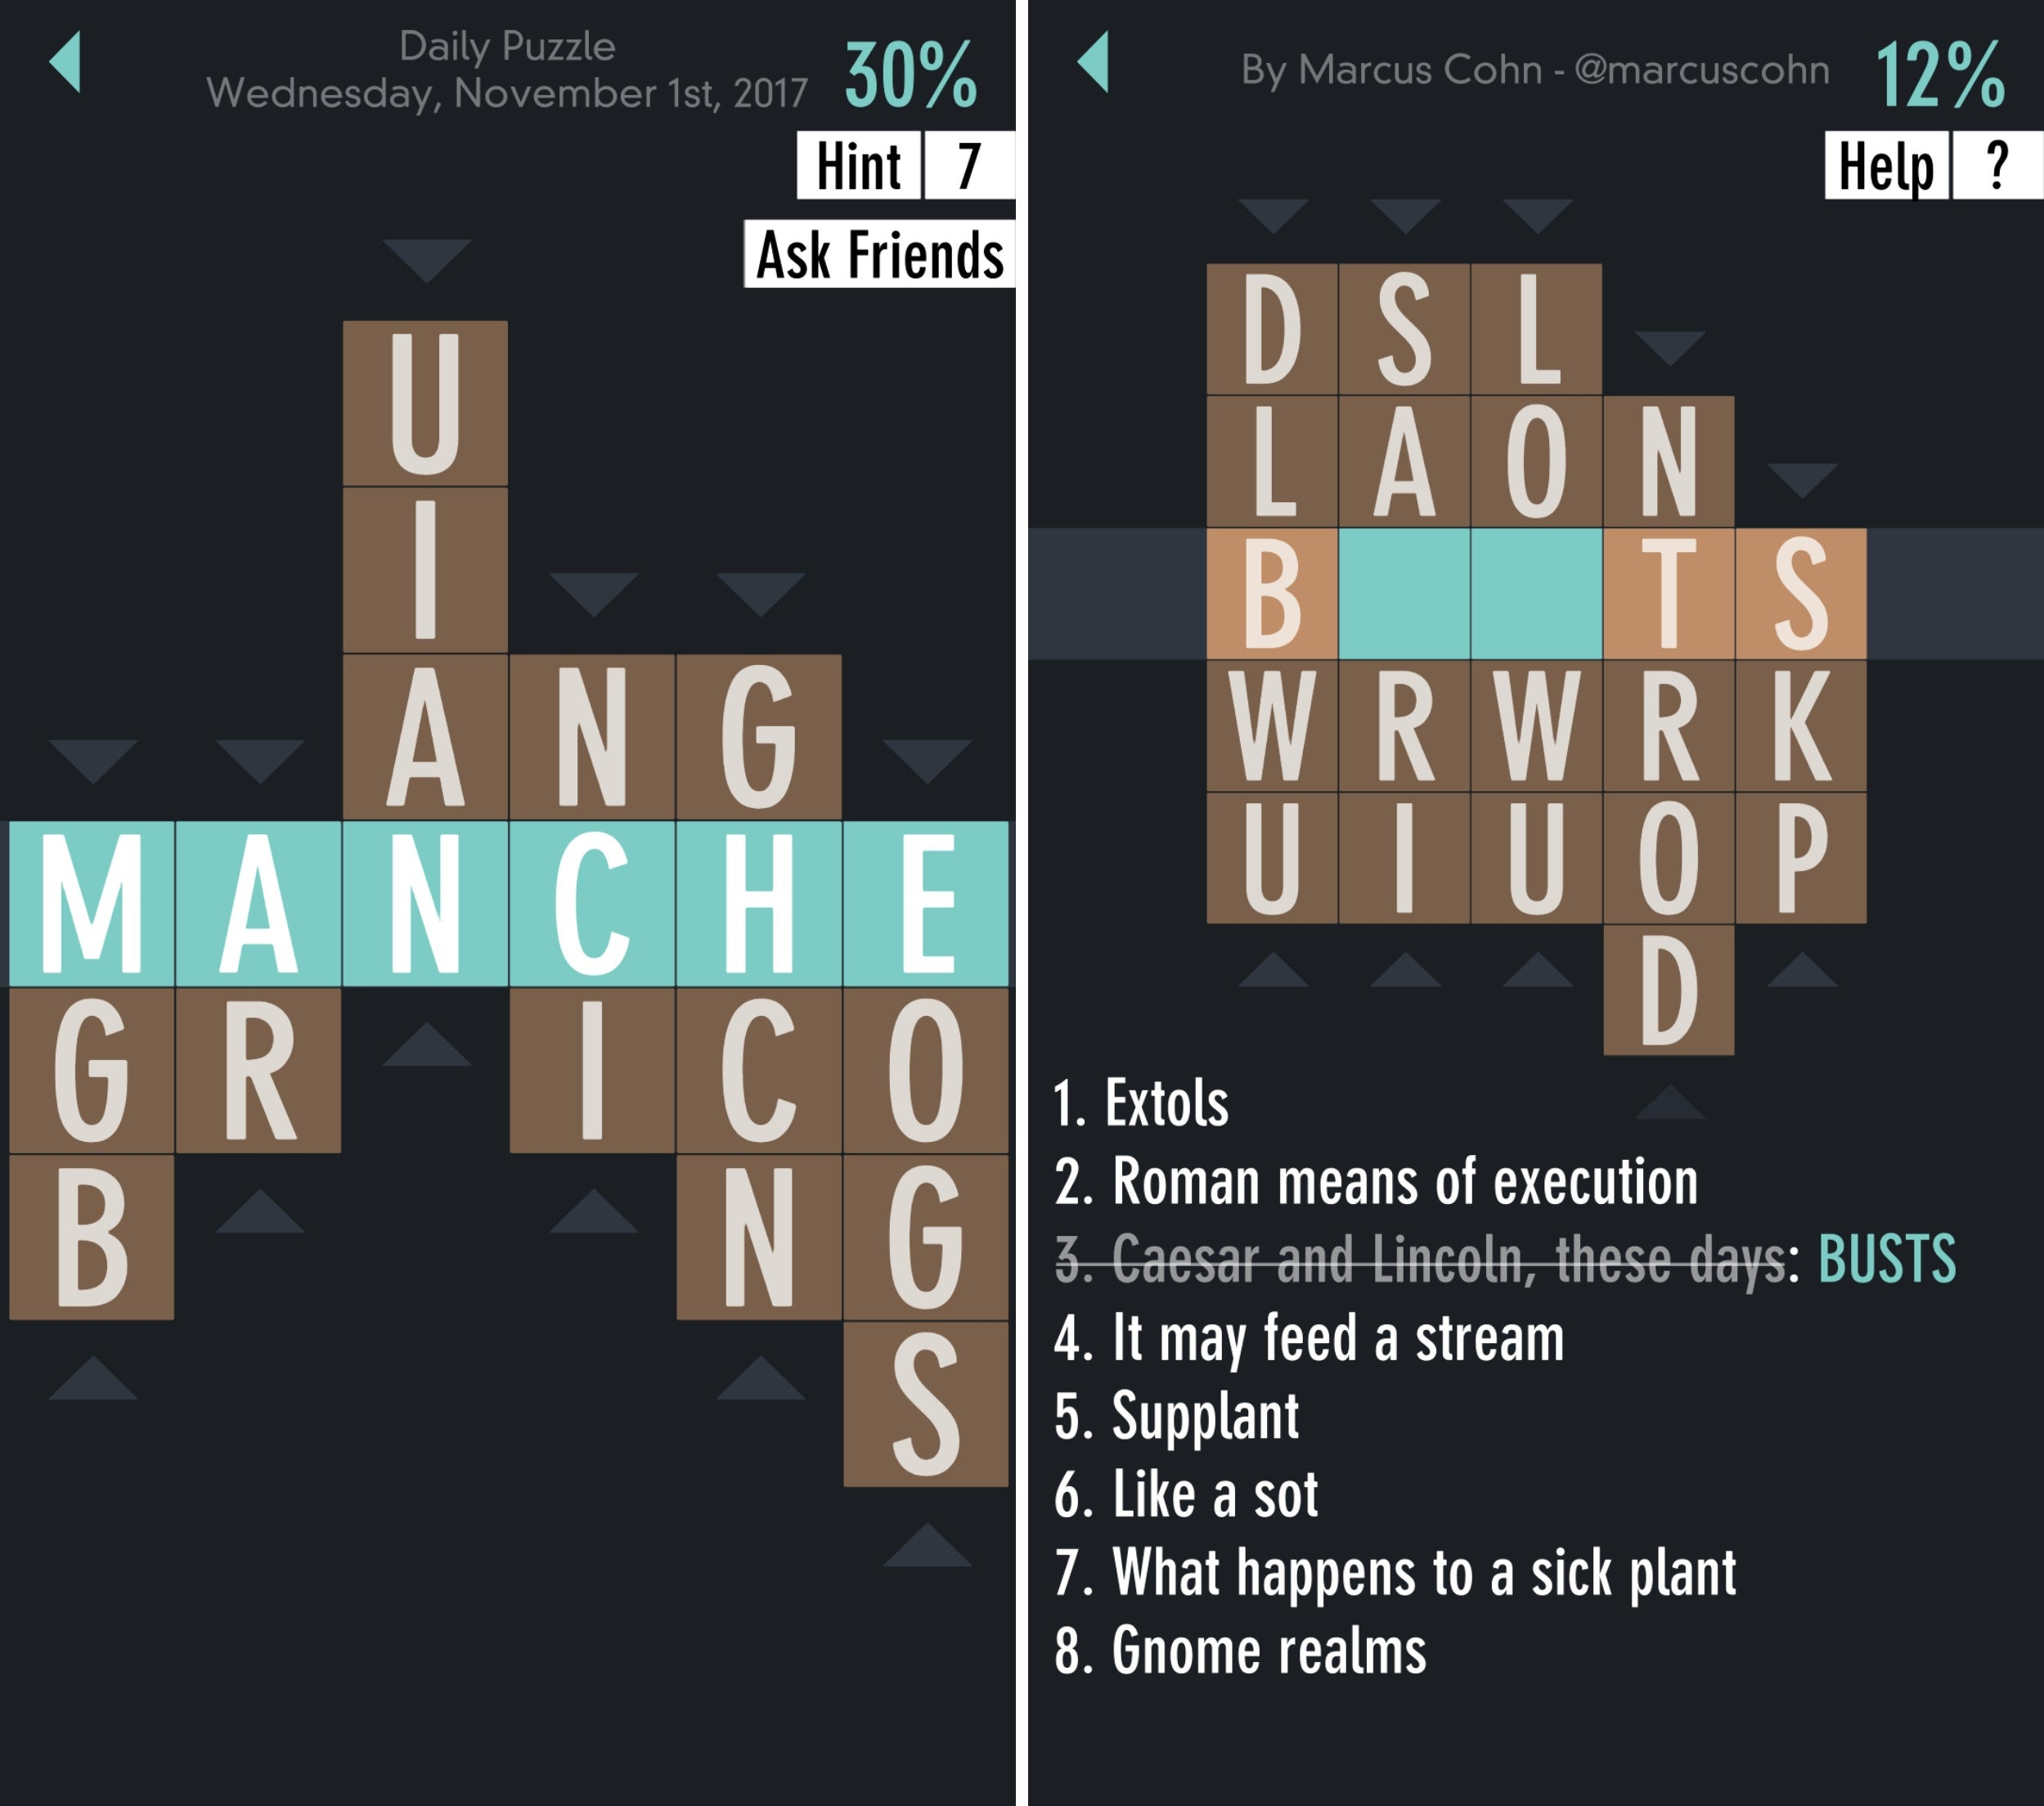 The 12 best iPhone and iPad word games | Macworld